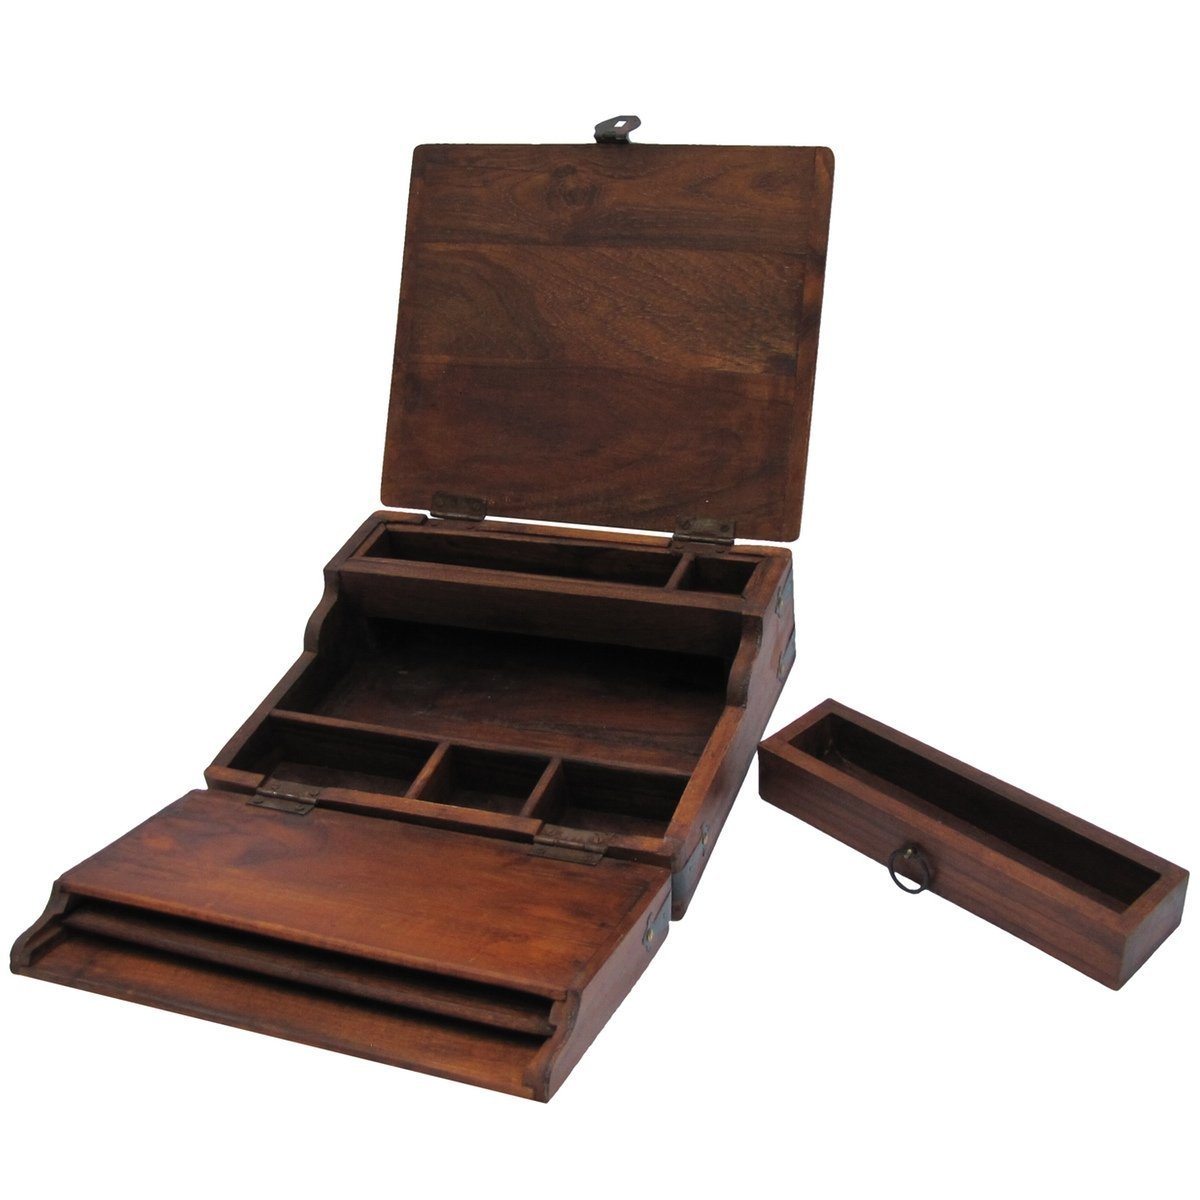 Antique Style Writing Lap Desk by IIV